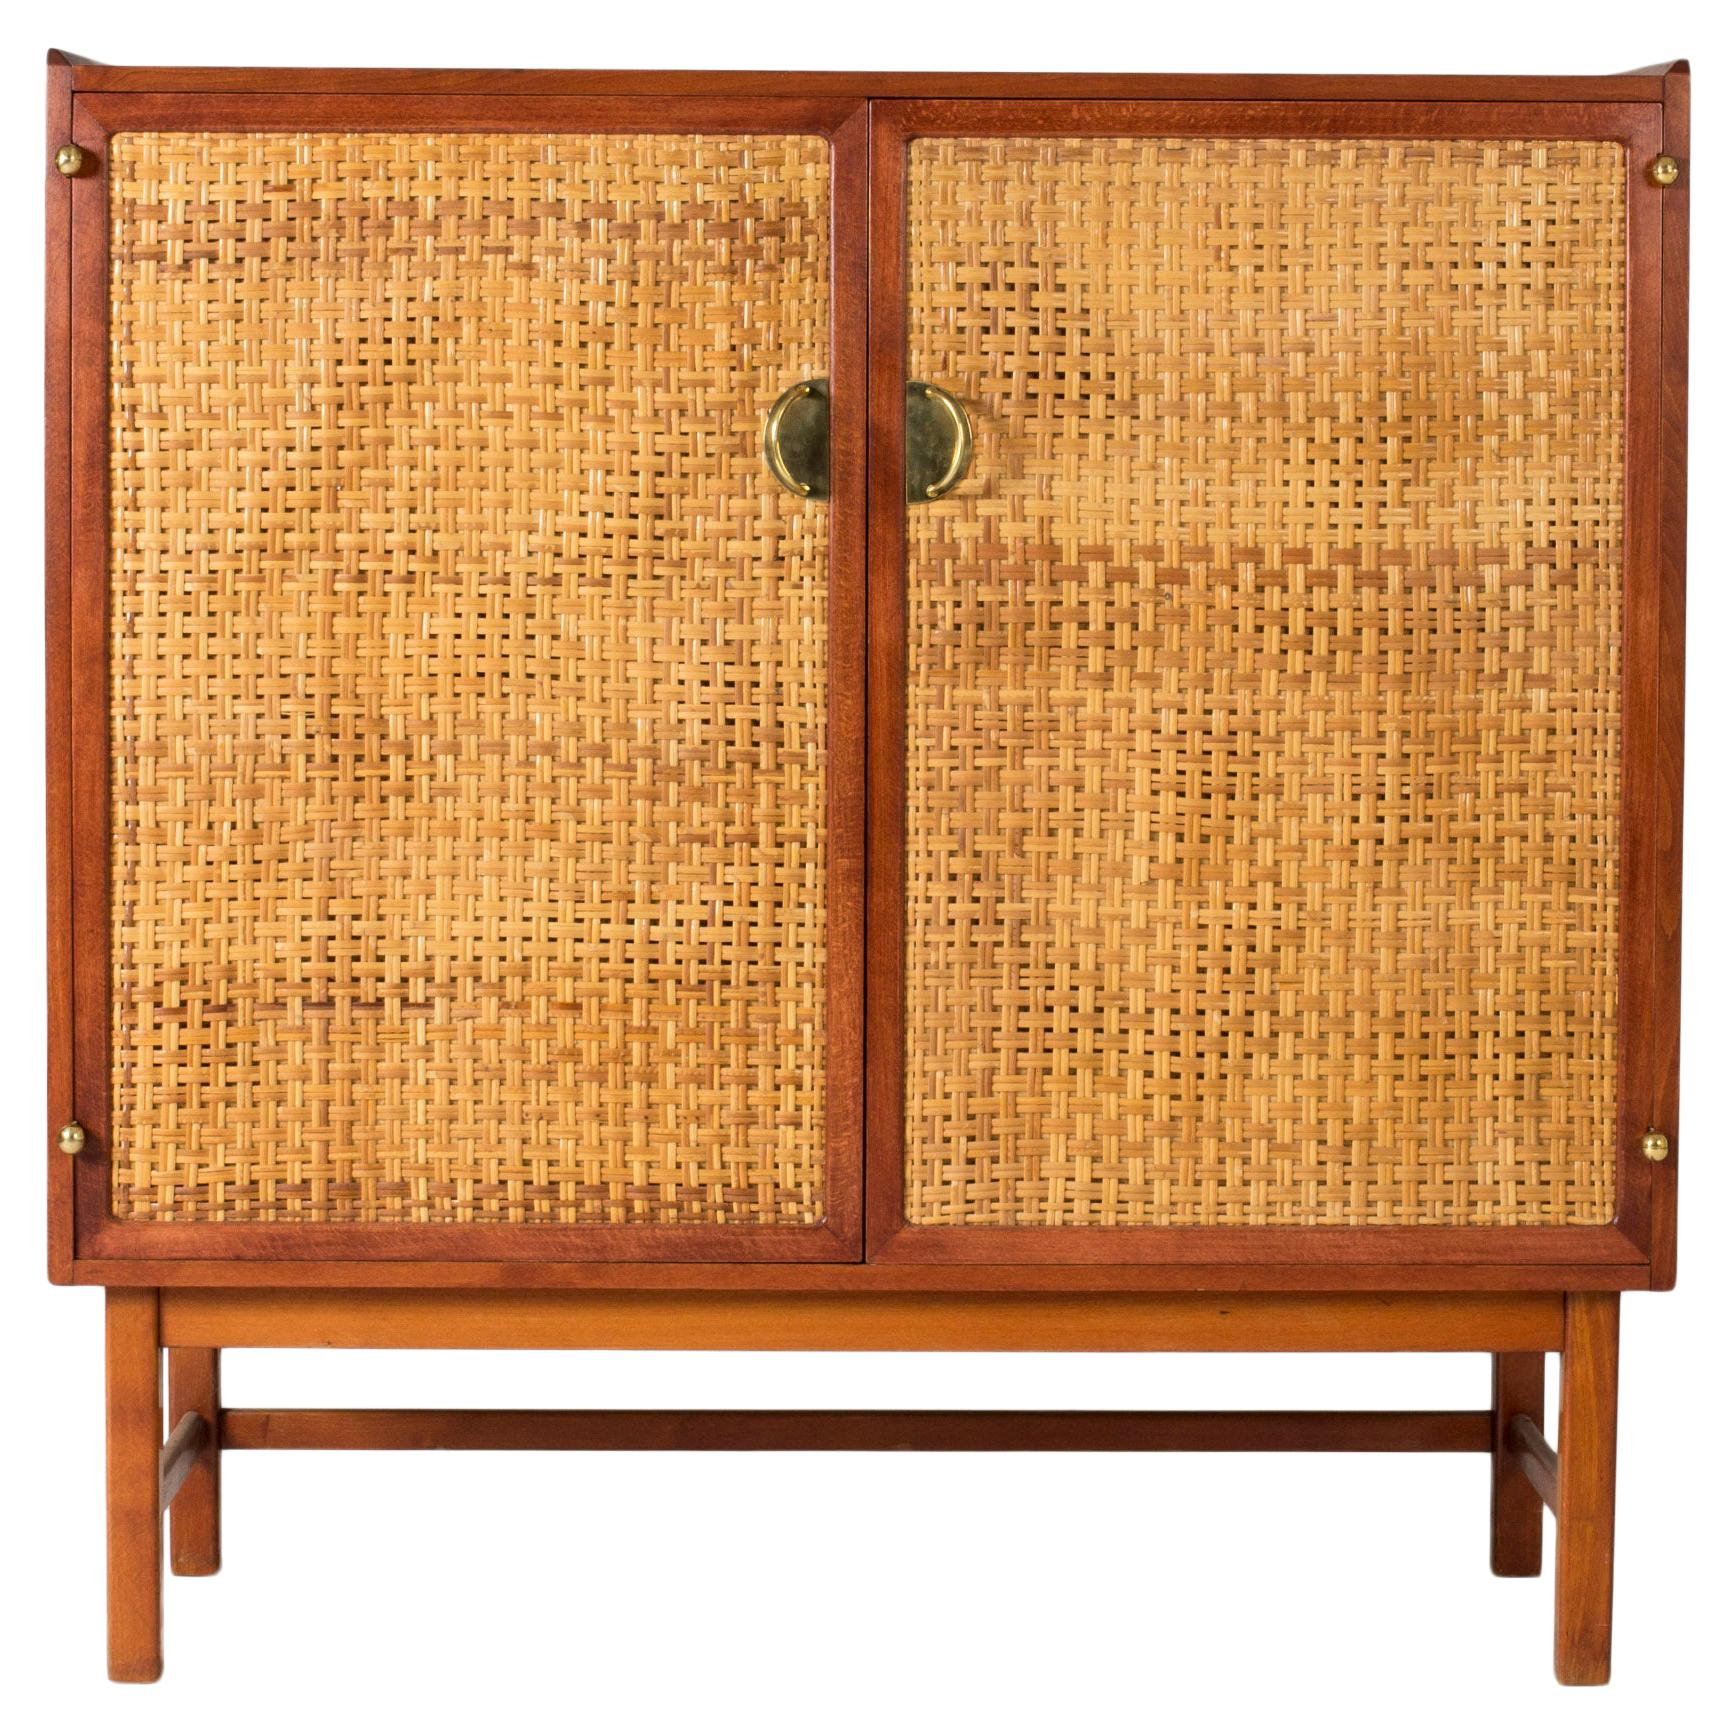 Mahogany, Brass and Rattan Cabinet from Westbergs Möbler, Sweden, 1950s